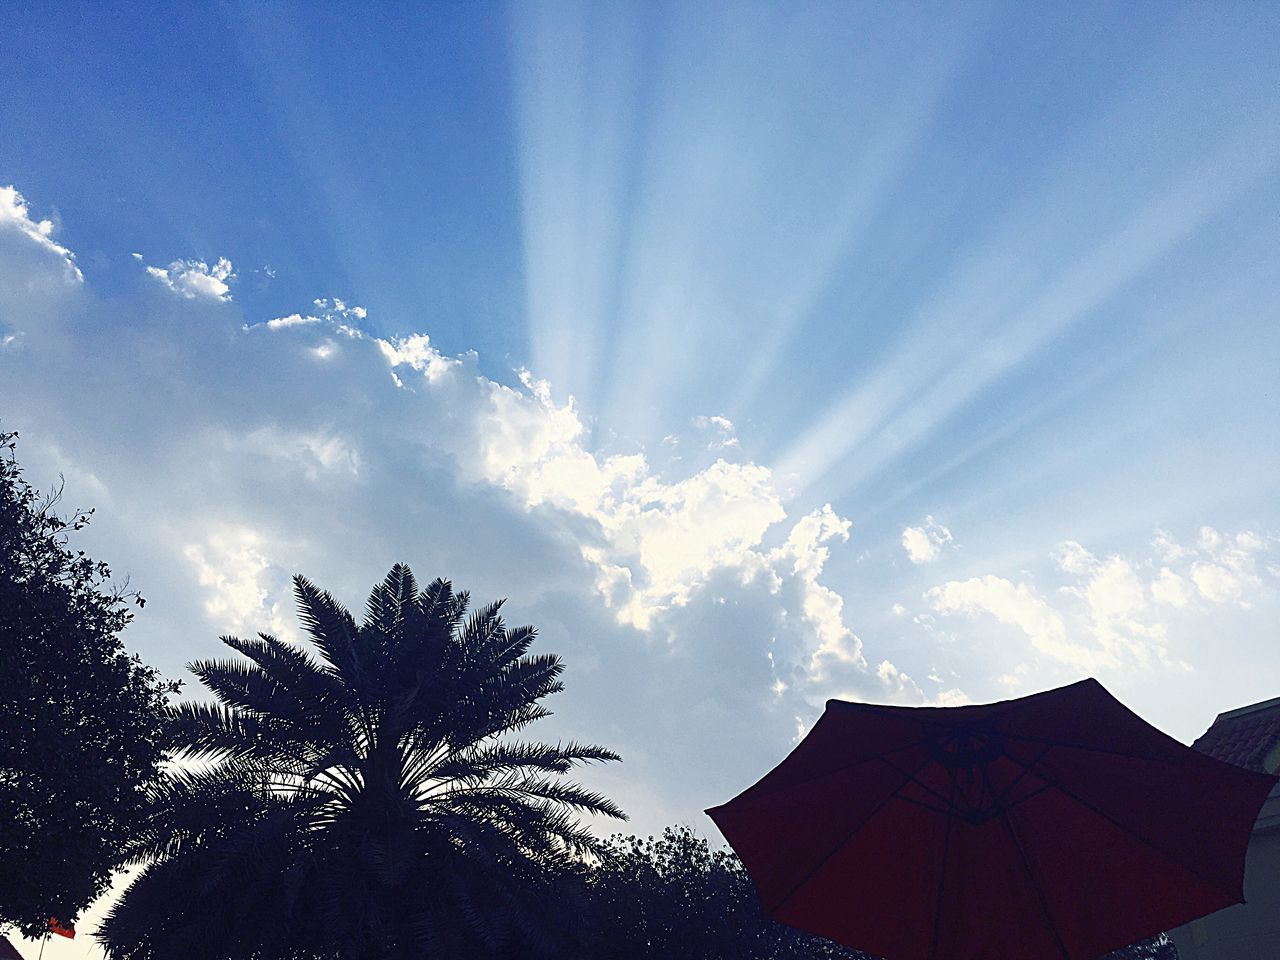 EyeEm Best Shots Bahrain Relaxing In The Garden Friday Hamala Clouds And Sun IPhoneography Iphone 6 Plus EyeEmNewHere EyeEmbestshots EyeEm Best Shots - Sunsets + Sunrise